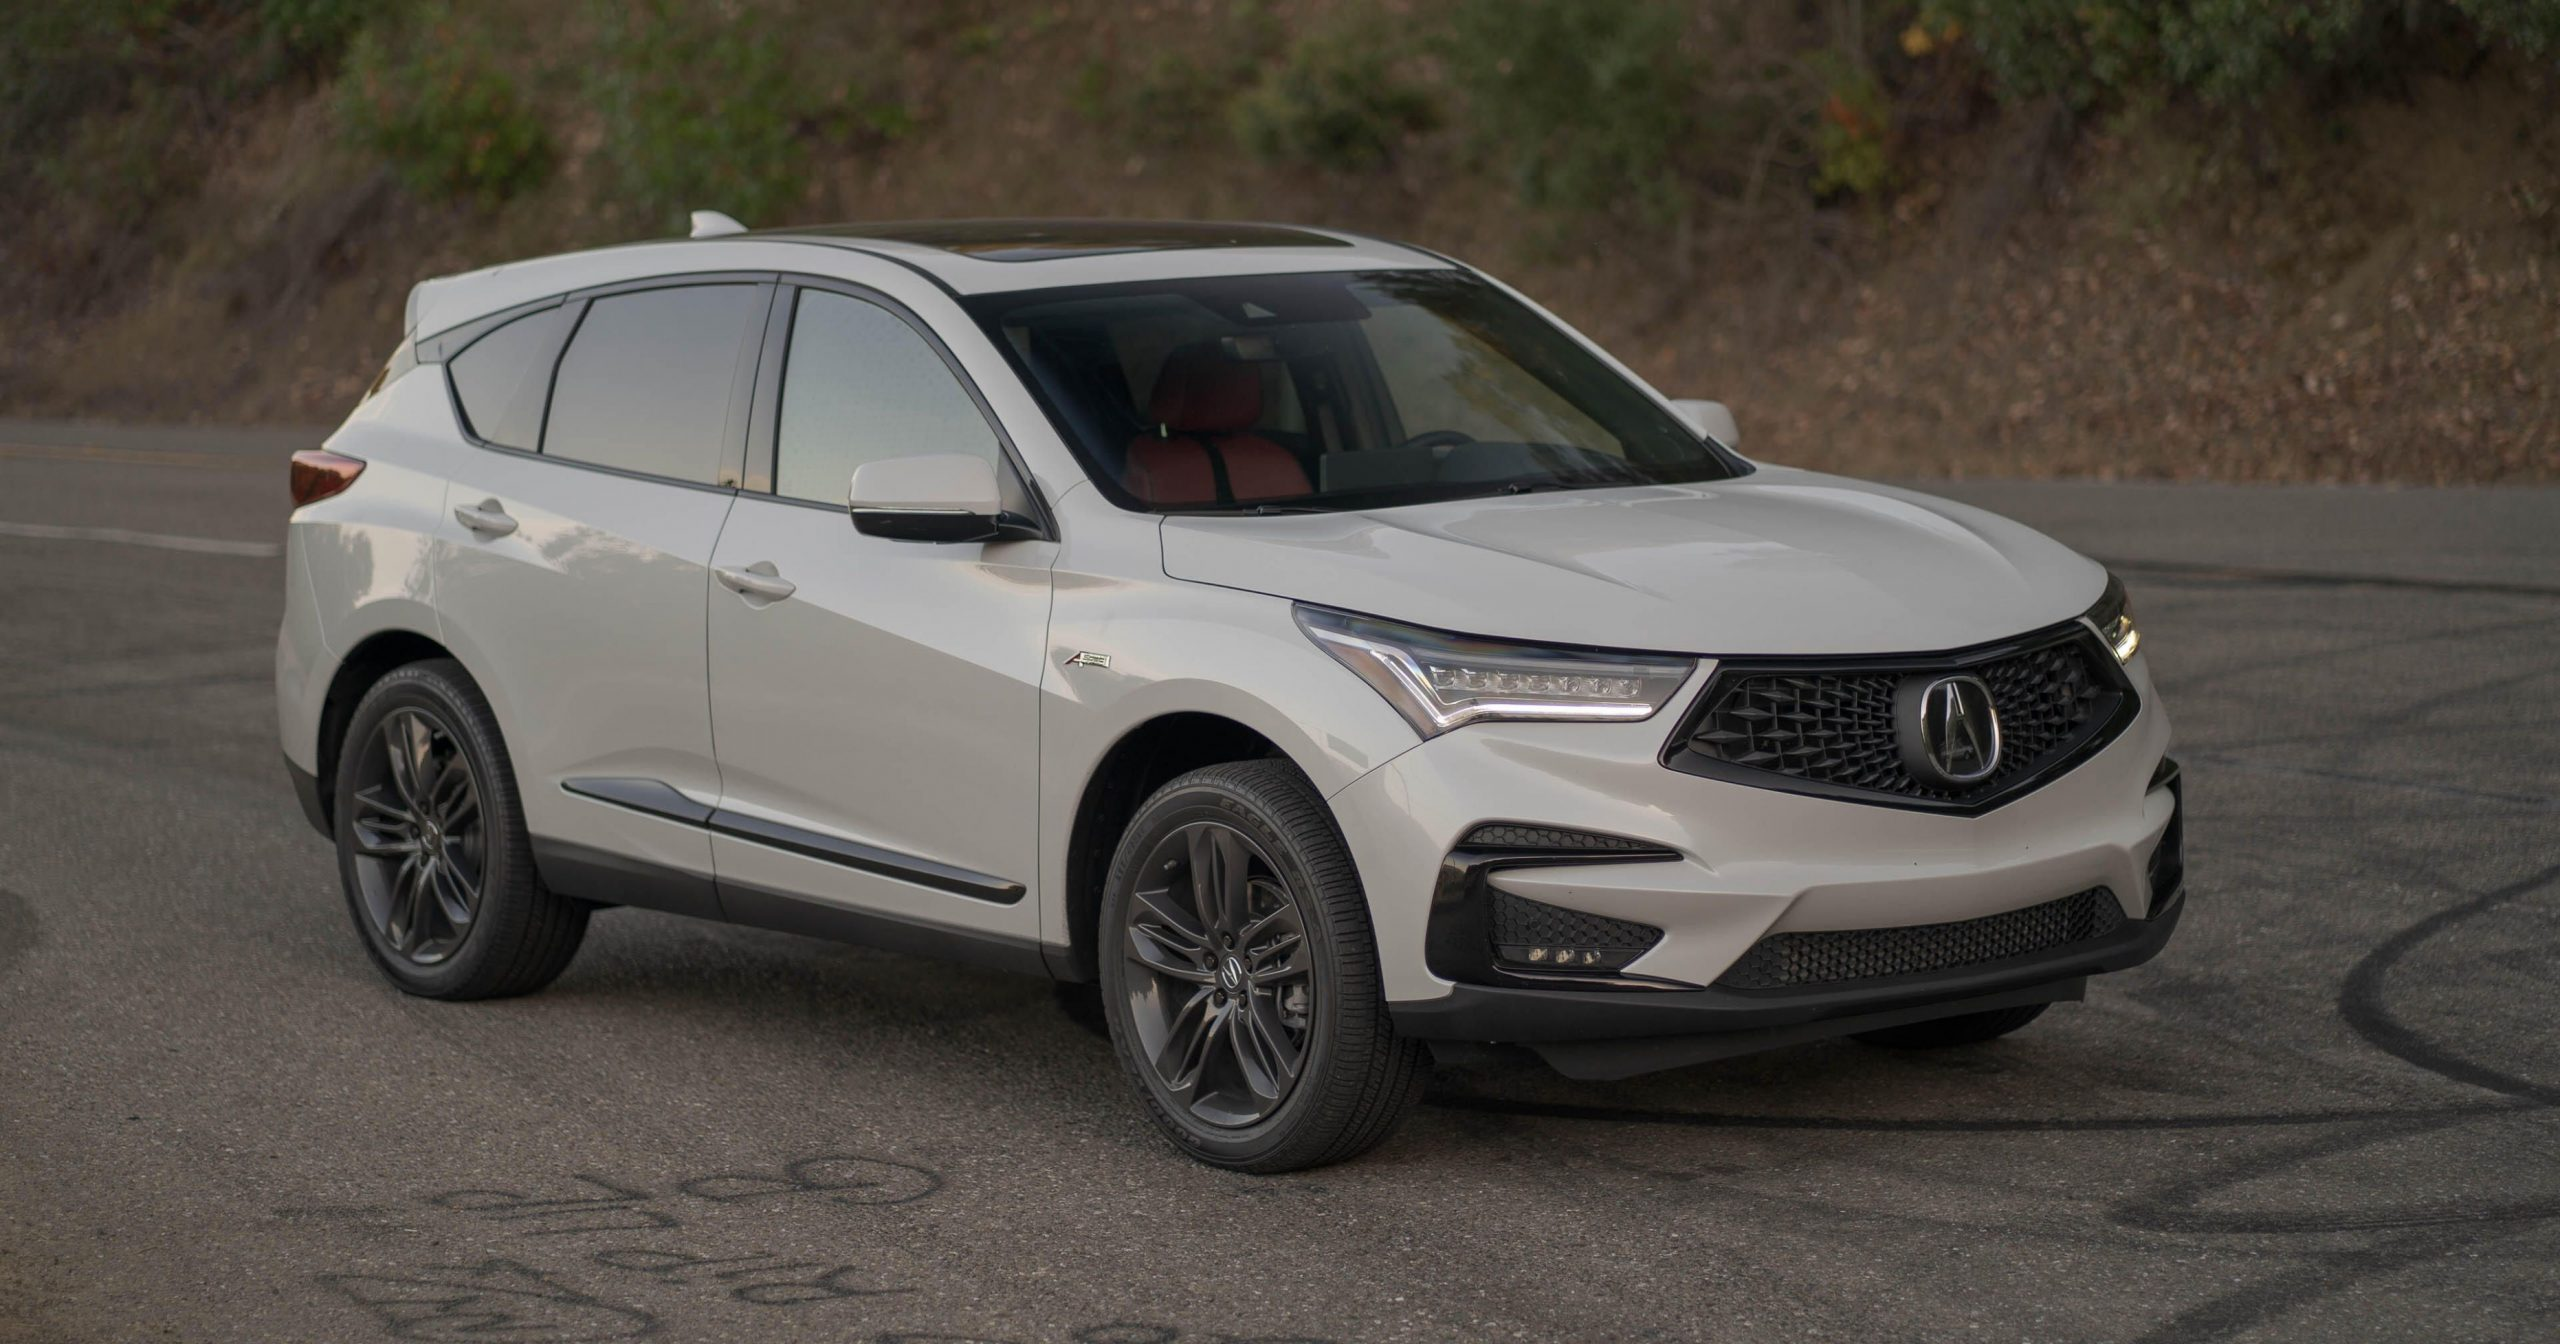 4 Acura RDX review: The fast and the frugal - Roadshow - 2021 Acura Rdx Aspec